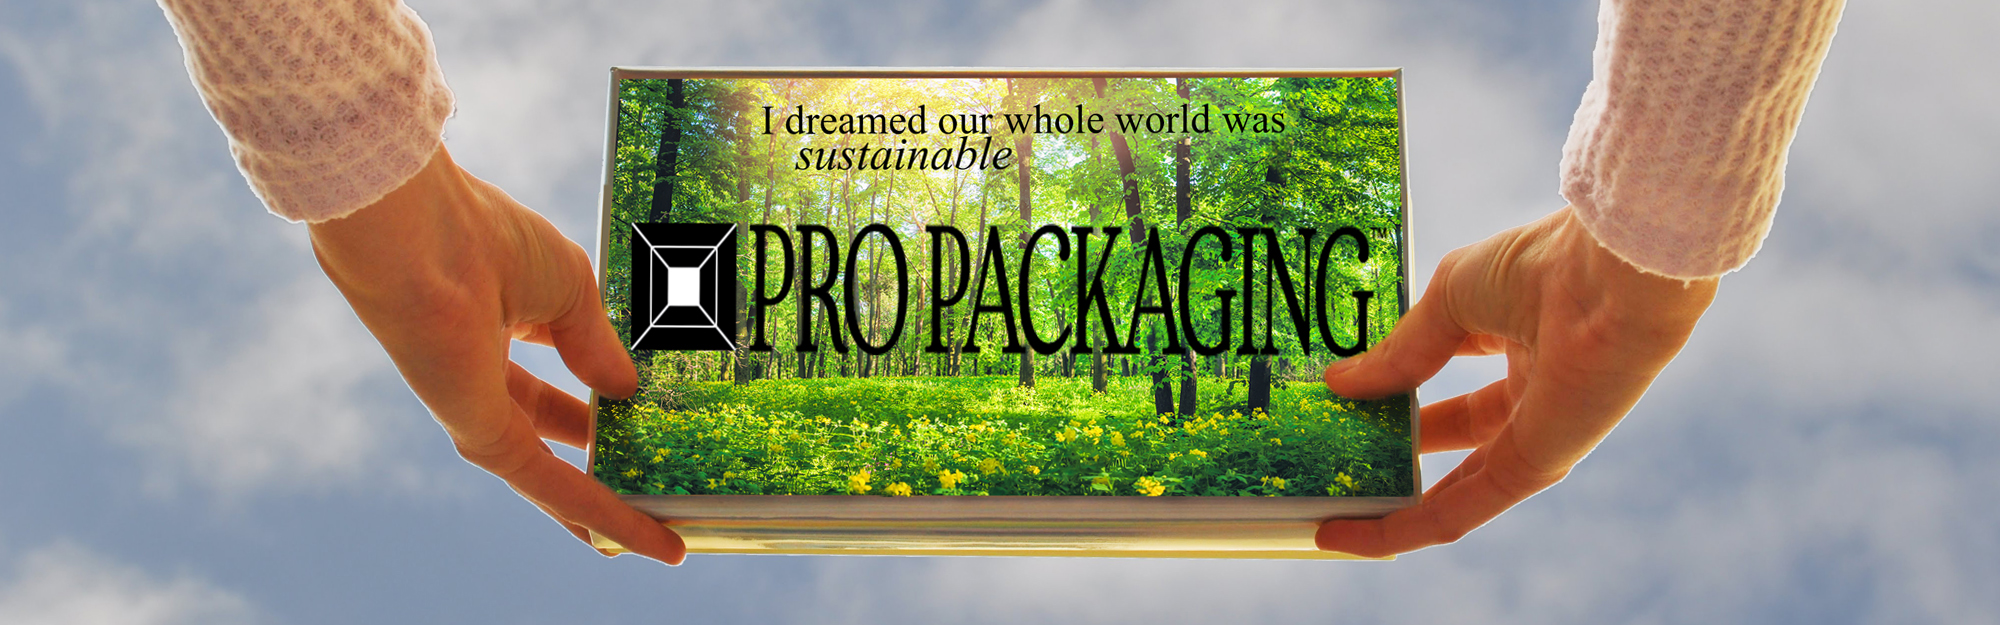 Pro Packaging Sustainability